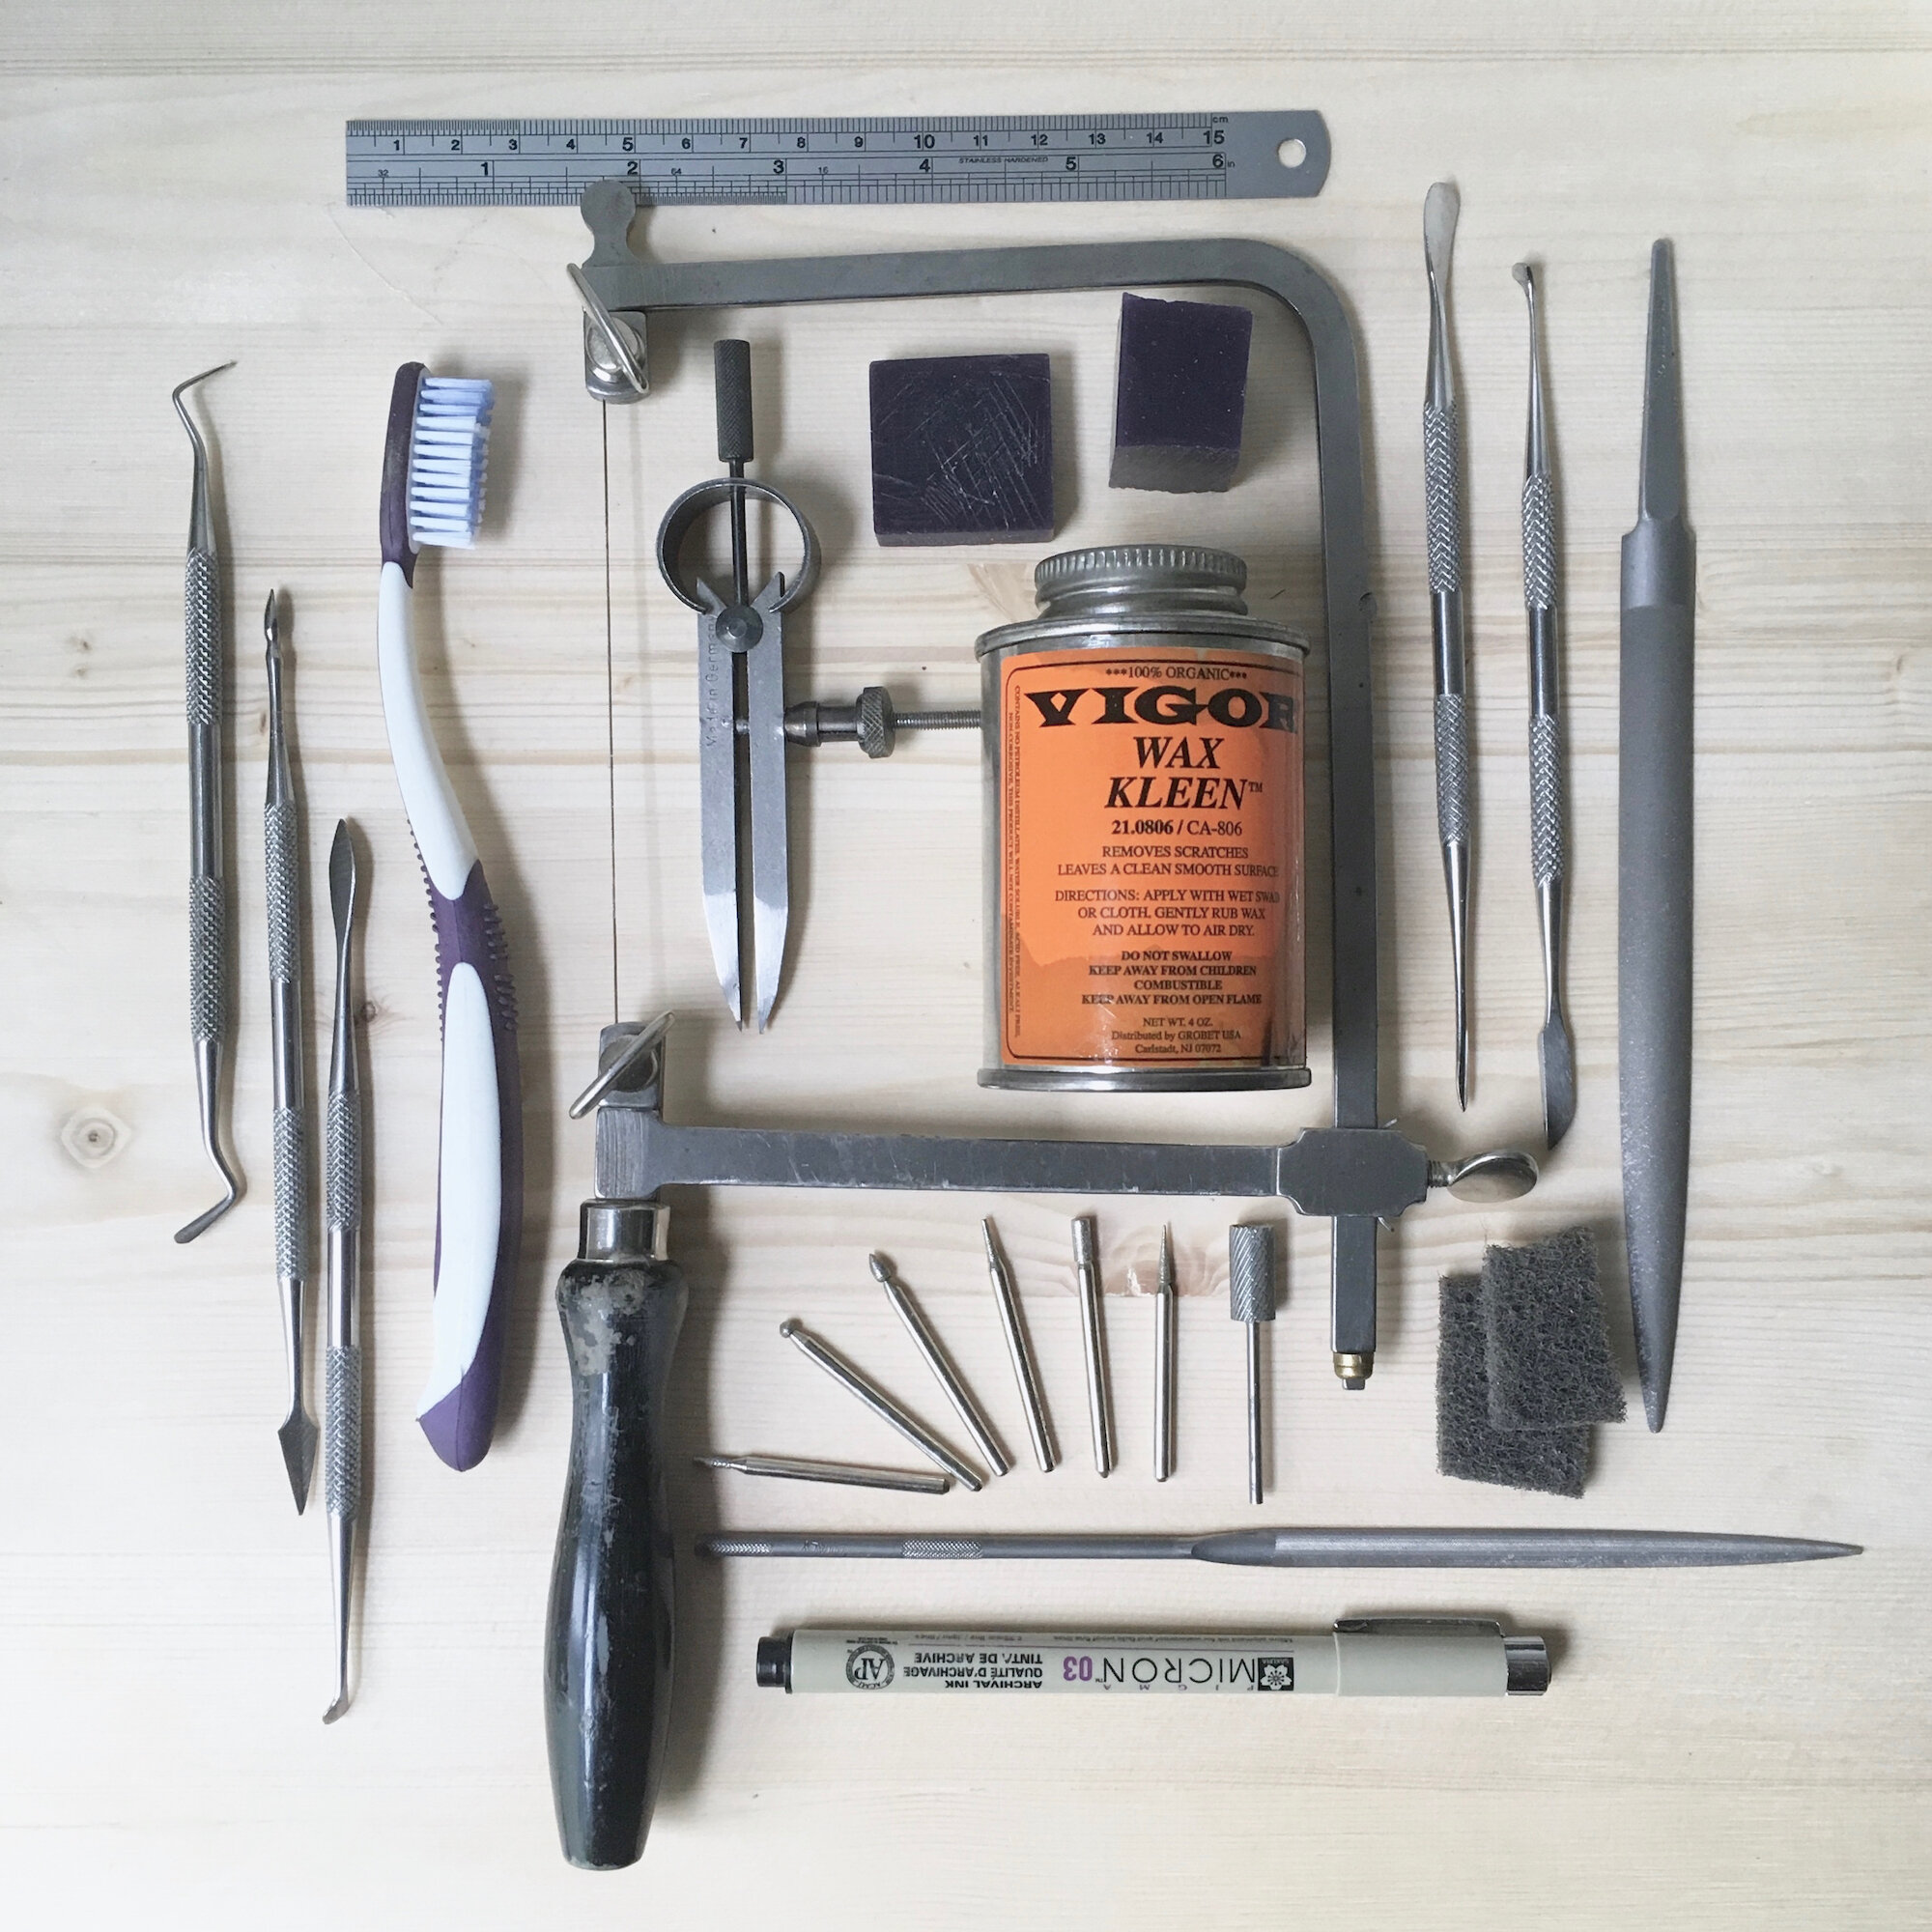 A variety of tools used for carving wax models.